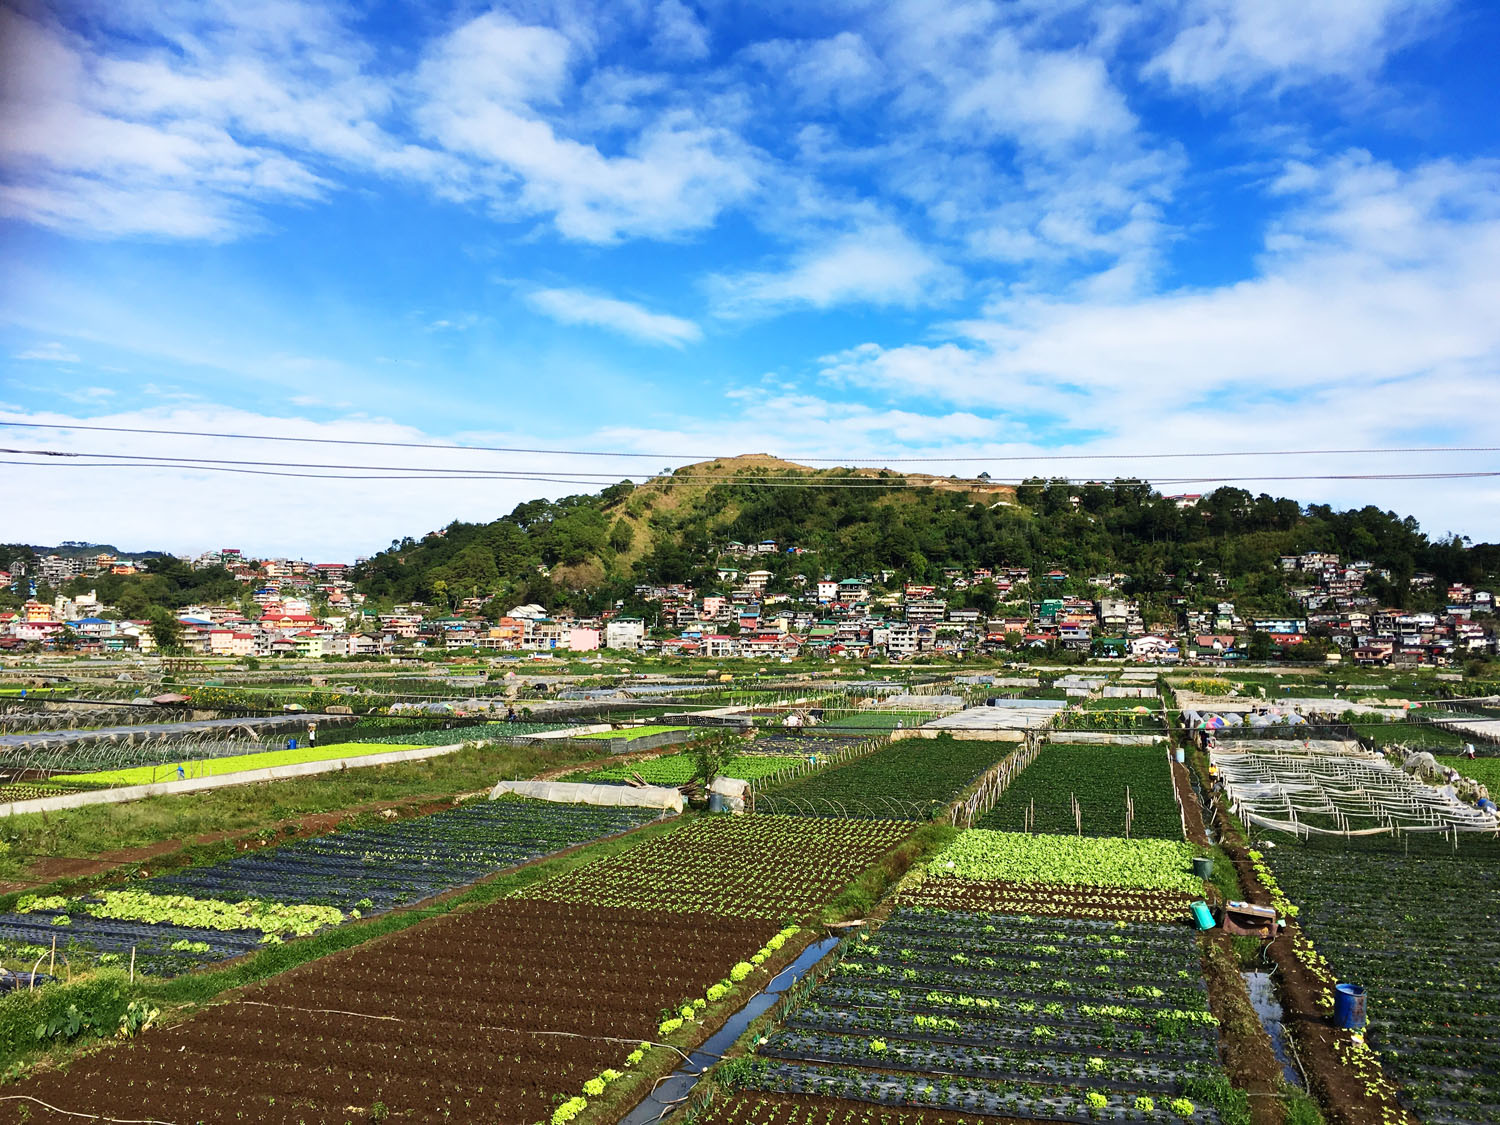 Photo of La Trinidad Strawberry Farm Baguio